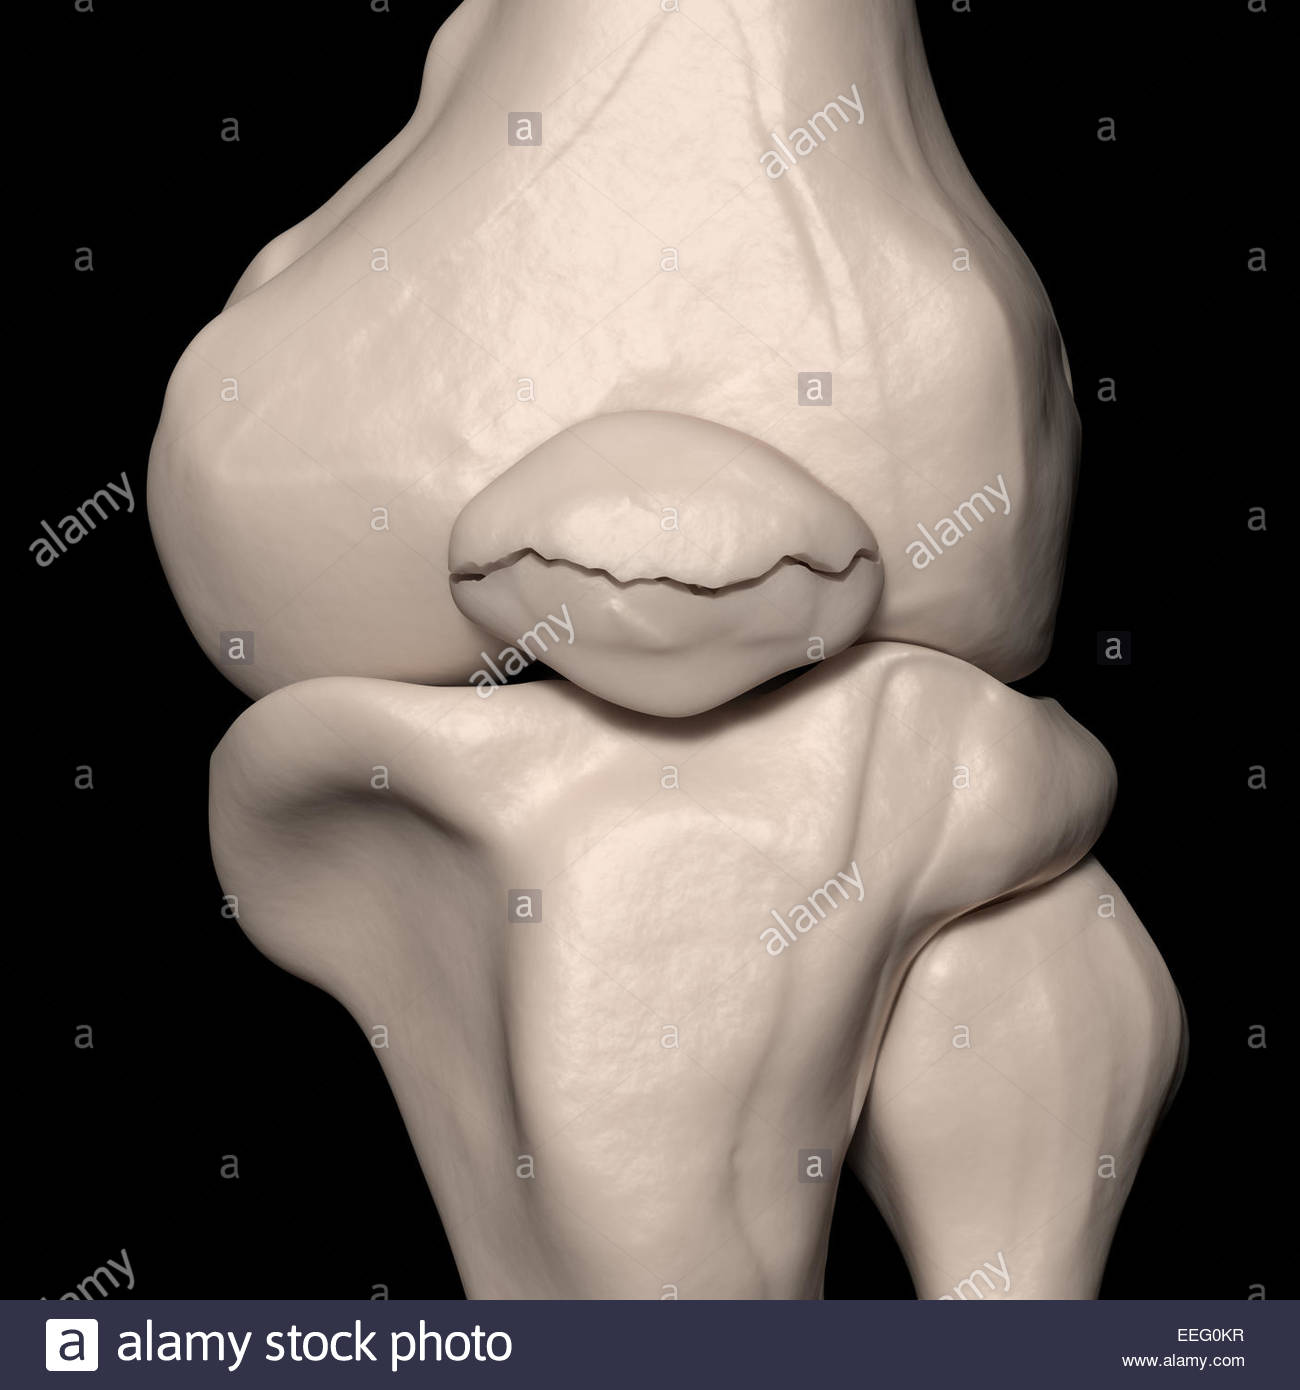 Digital medical illustration depicting a transverse patellar fracture. Anterior (front) view. Stock Photo